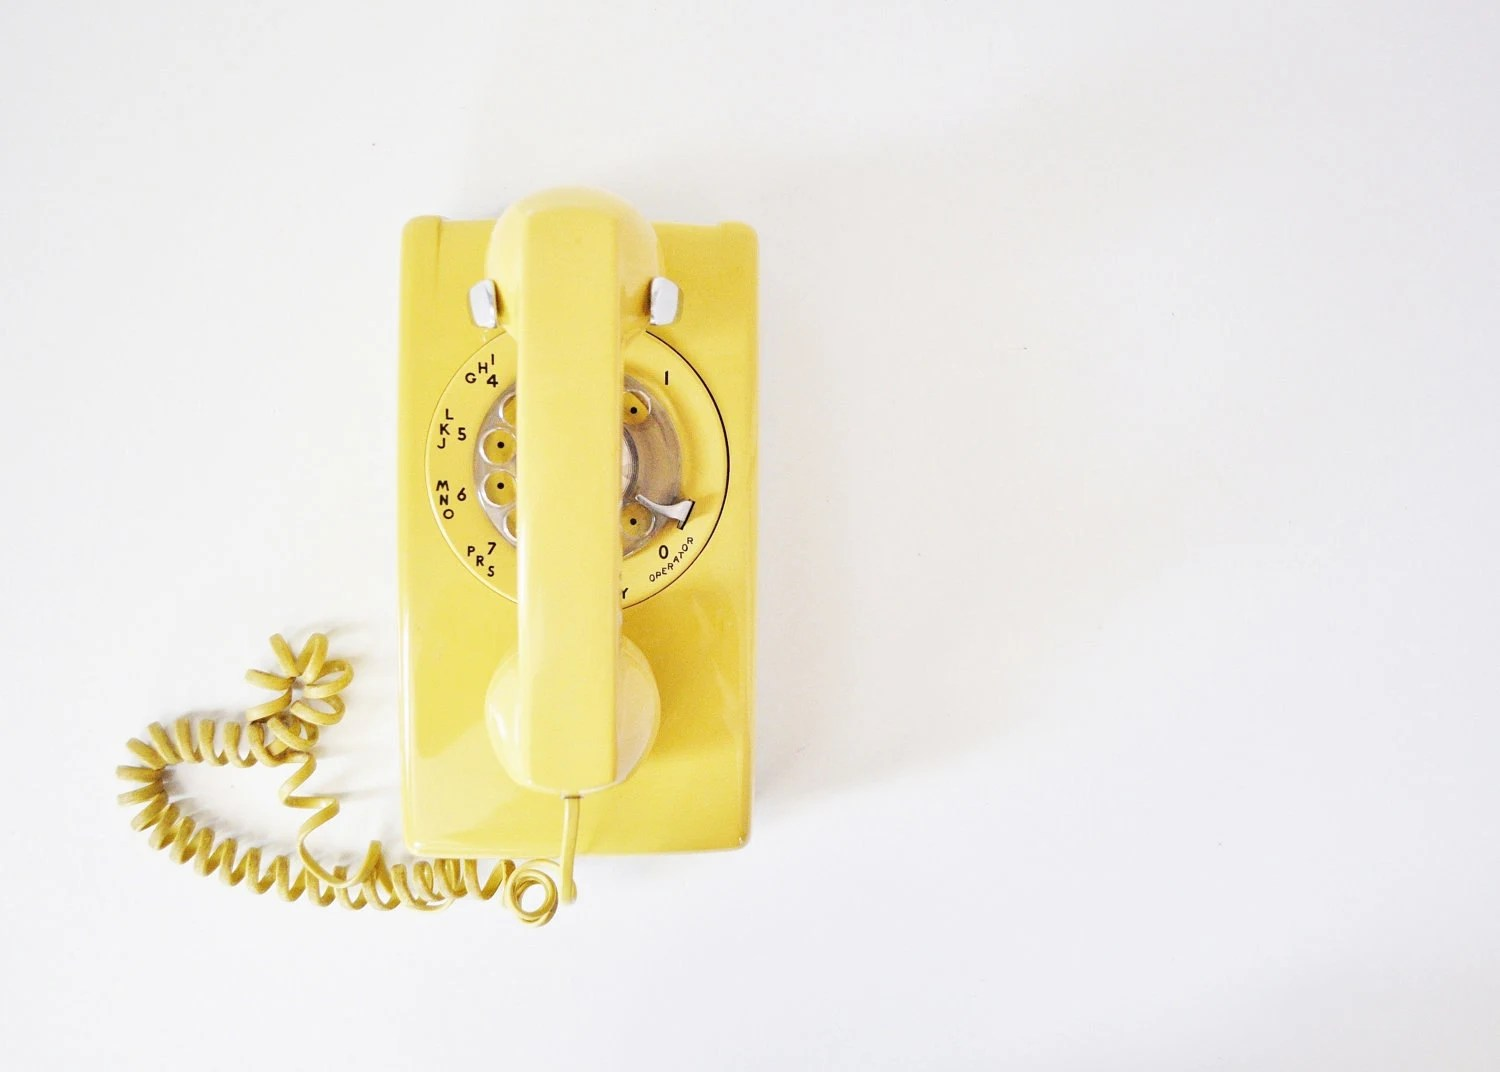 Canary Yellow Rotary Telephone - Working Bell Systems Phone